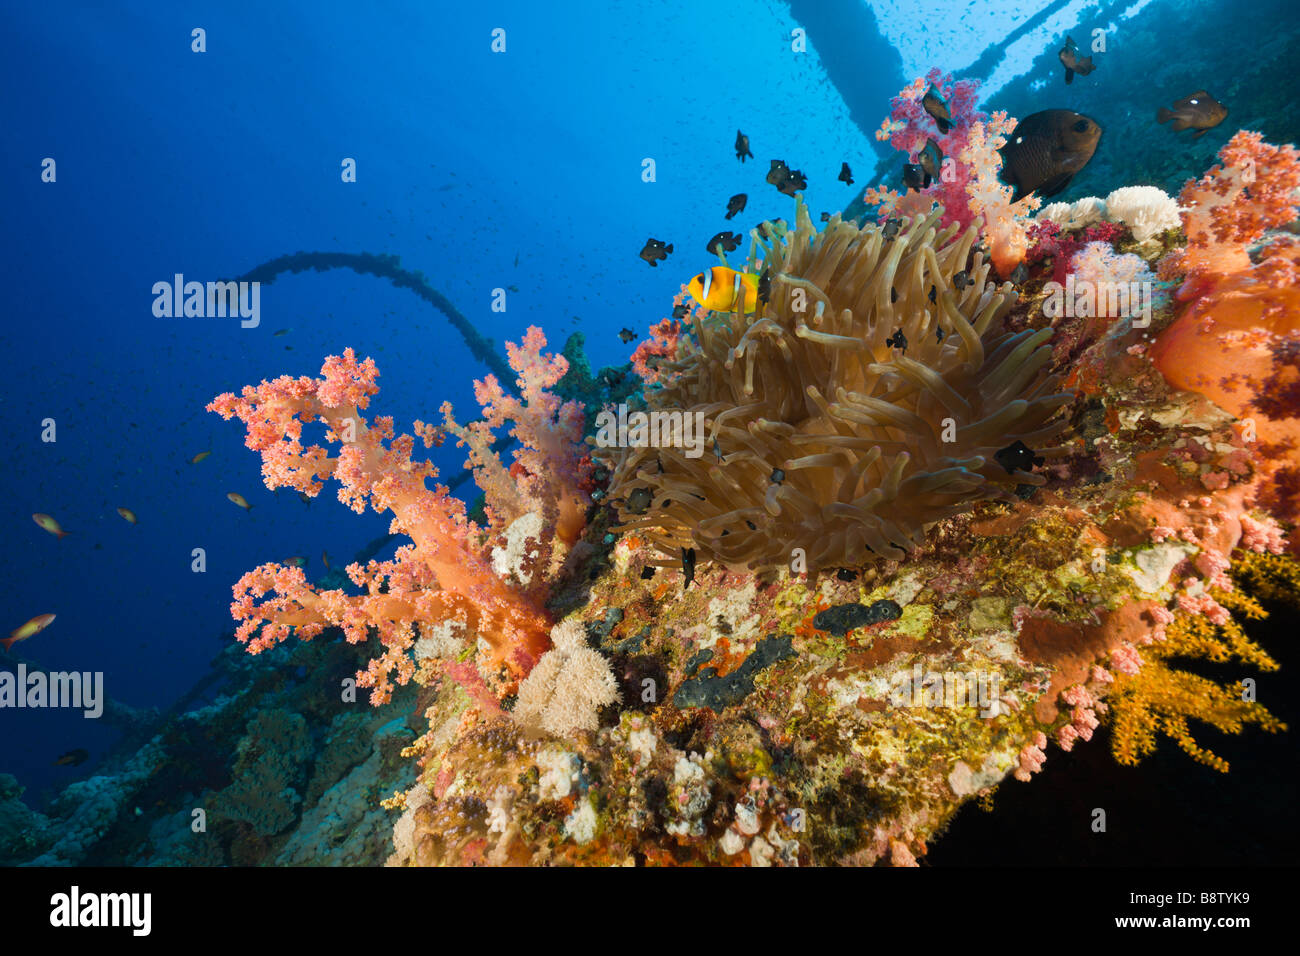 Sea Anemone at Numidia Wreck Heteractis magnifica Brother Islands Red Sea Egypt - Stock Image